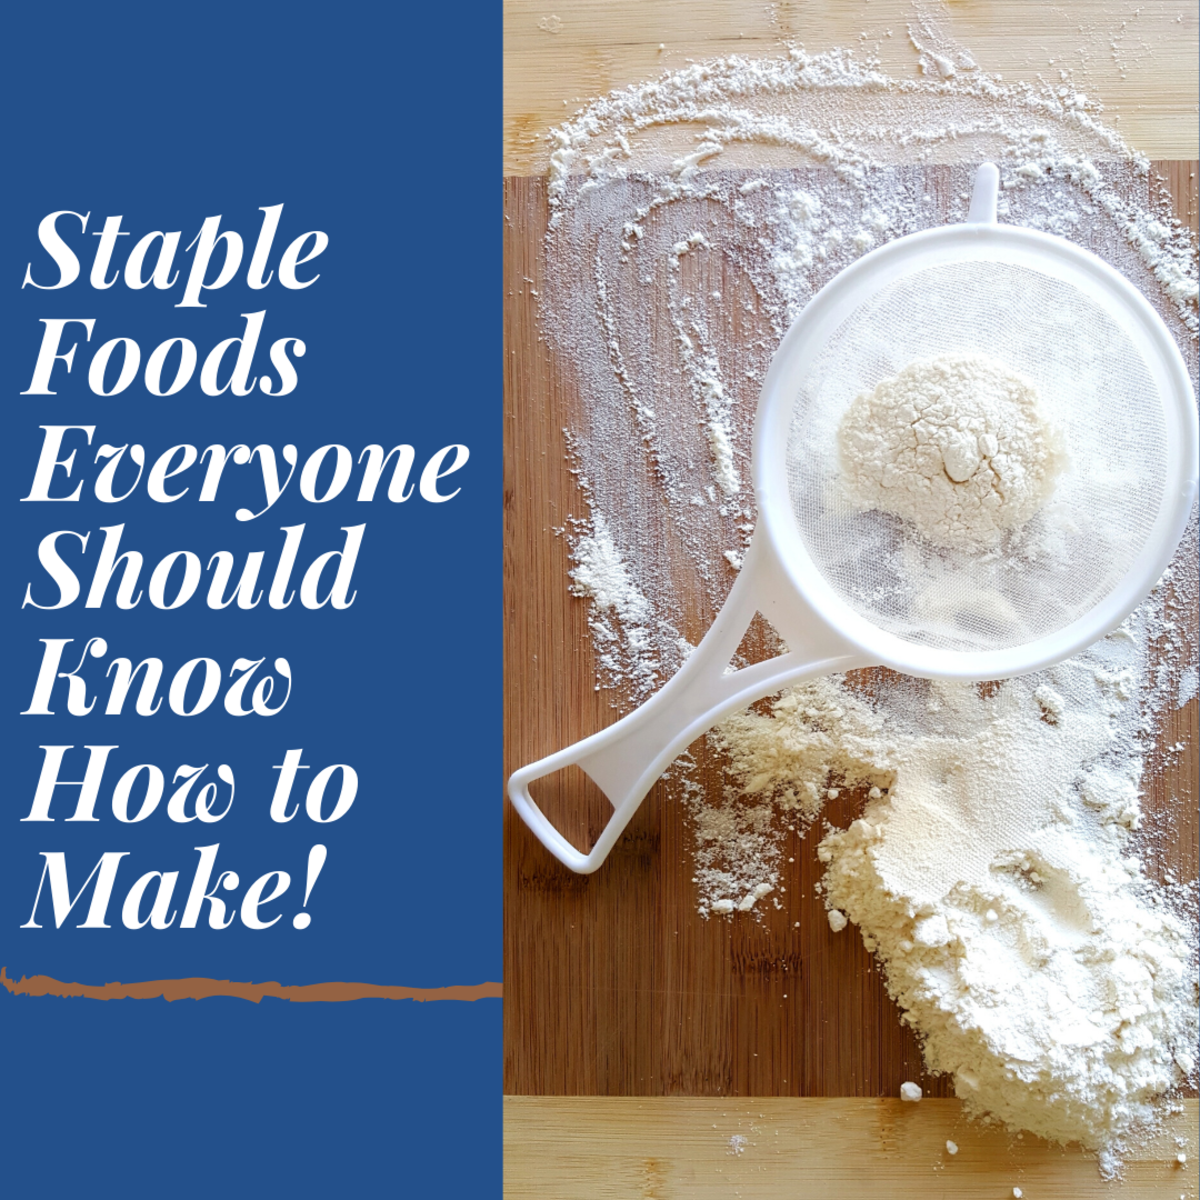 5 Staple Foods Everyone Should Know How to Make